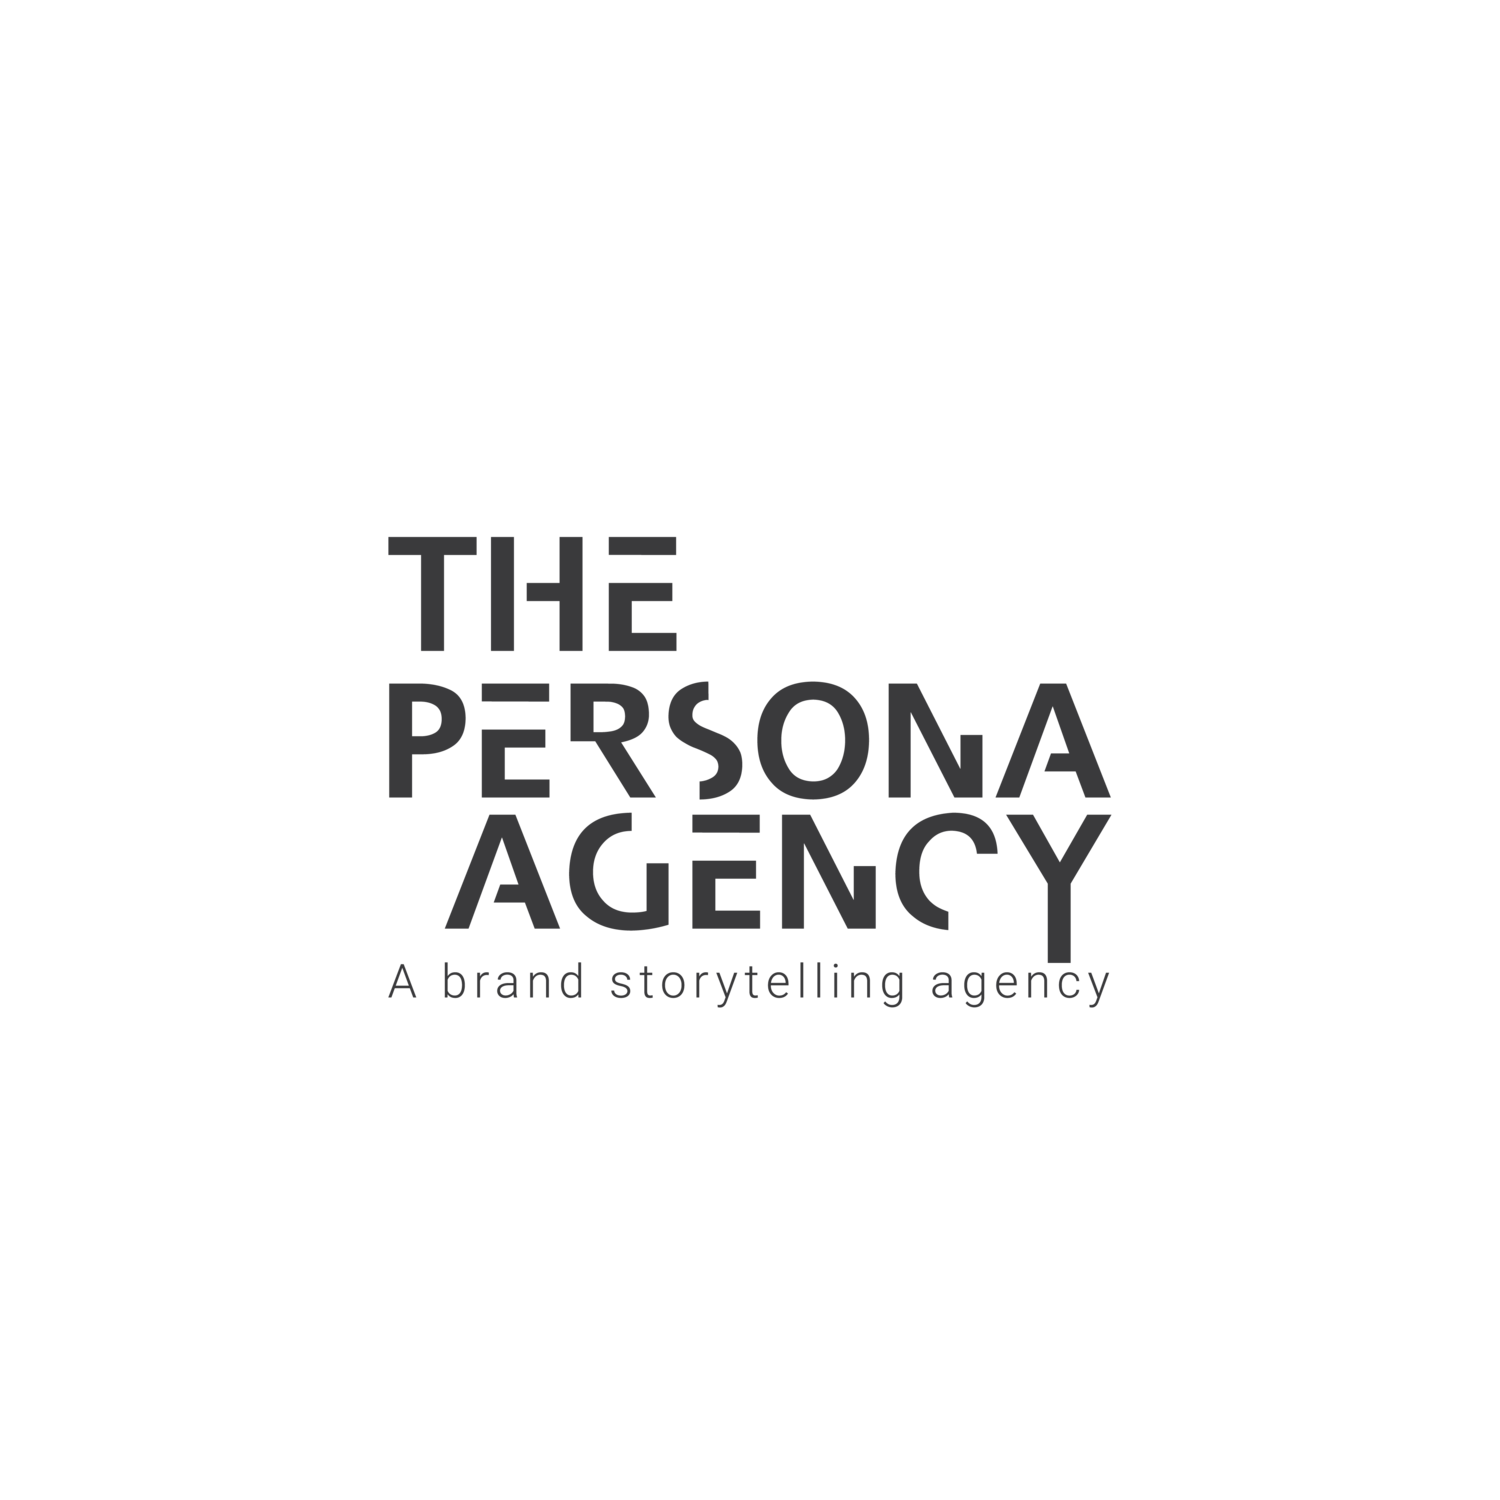 The Persona Agency